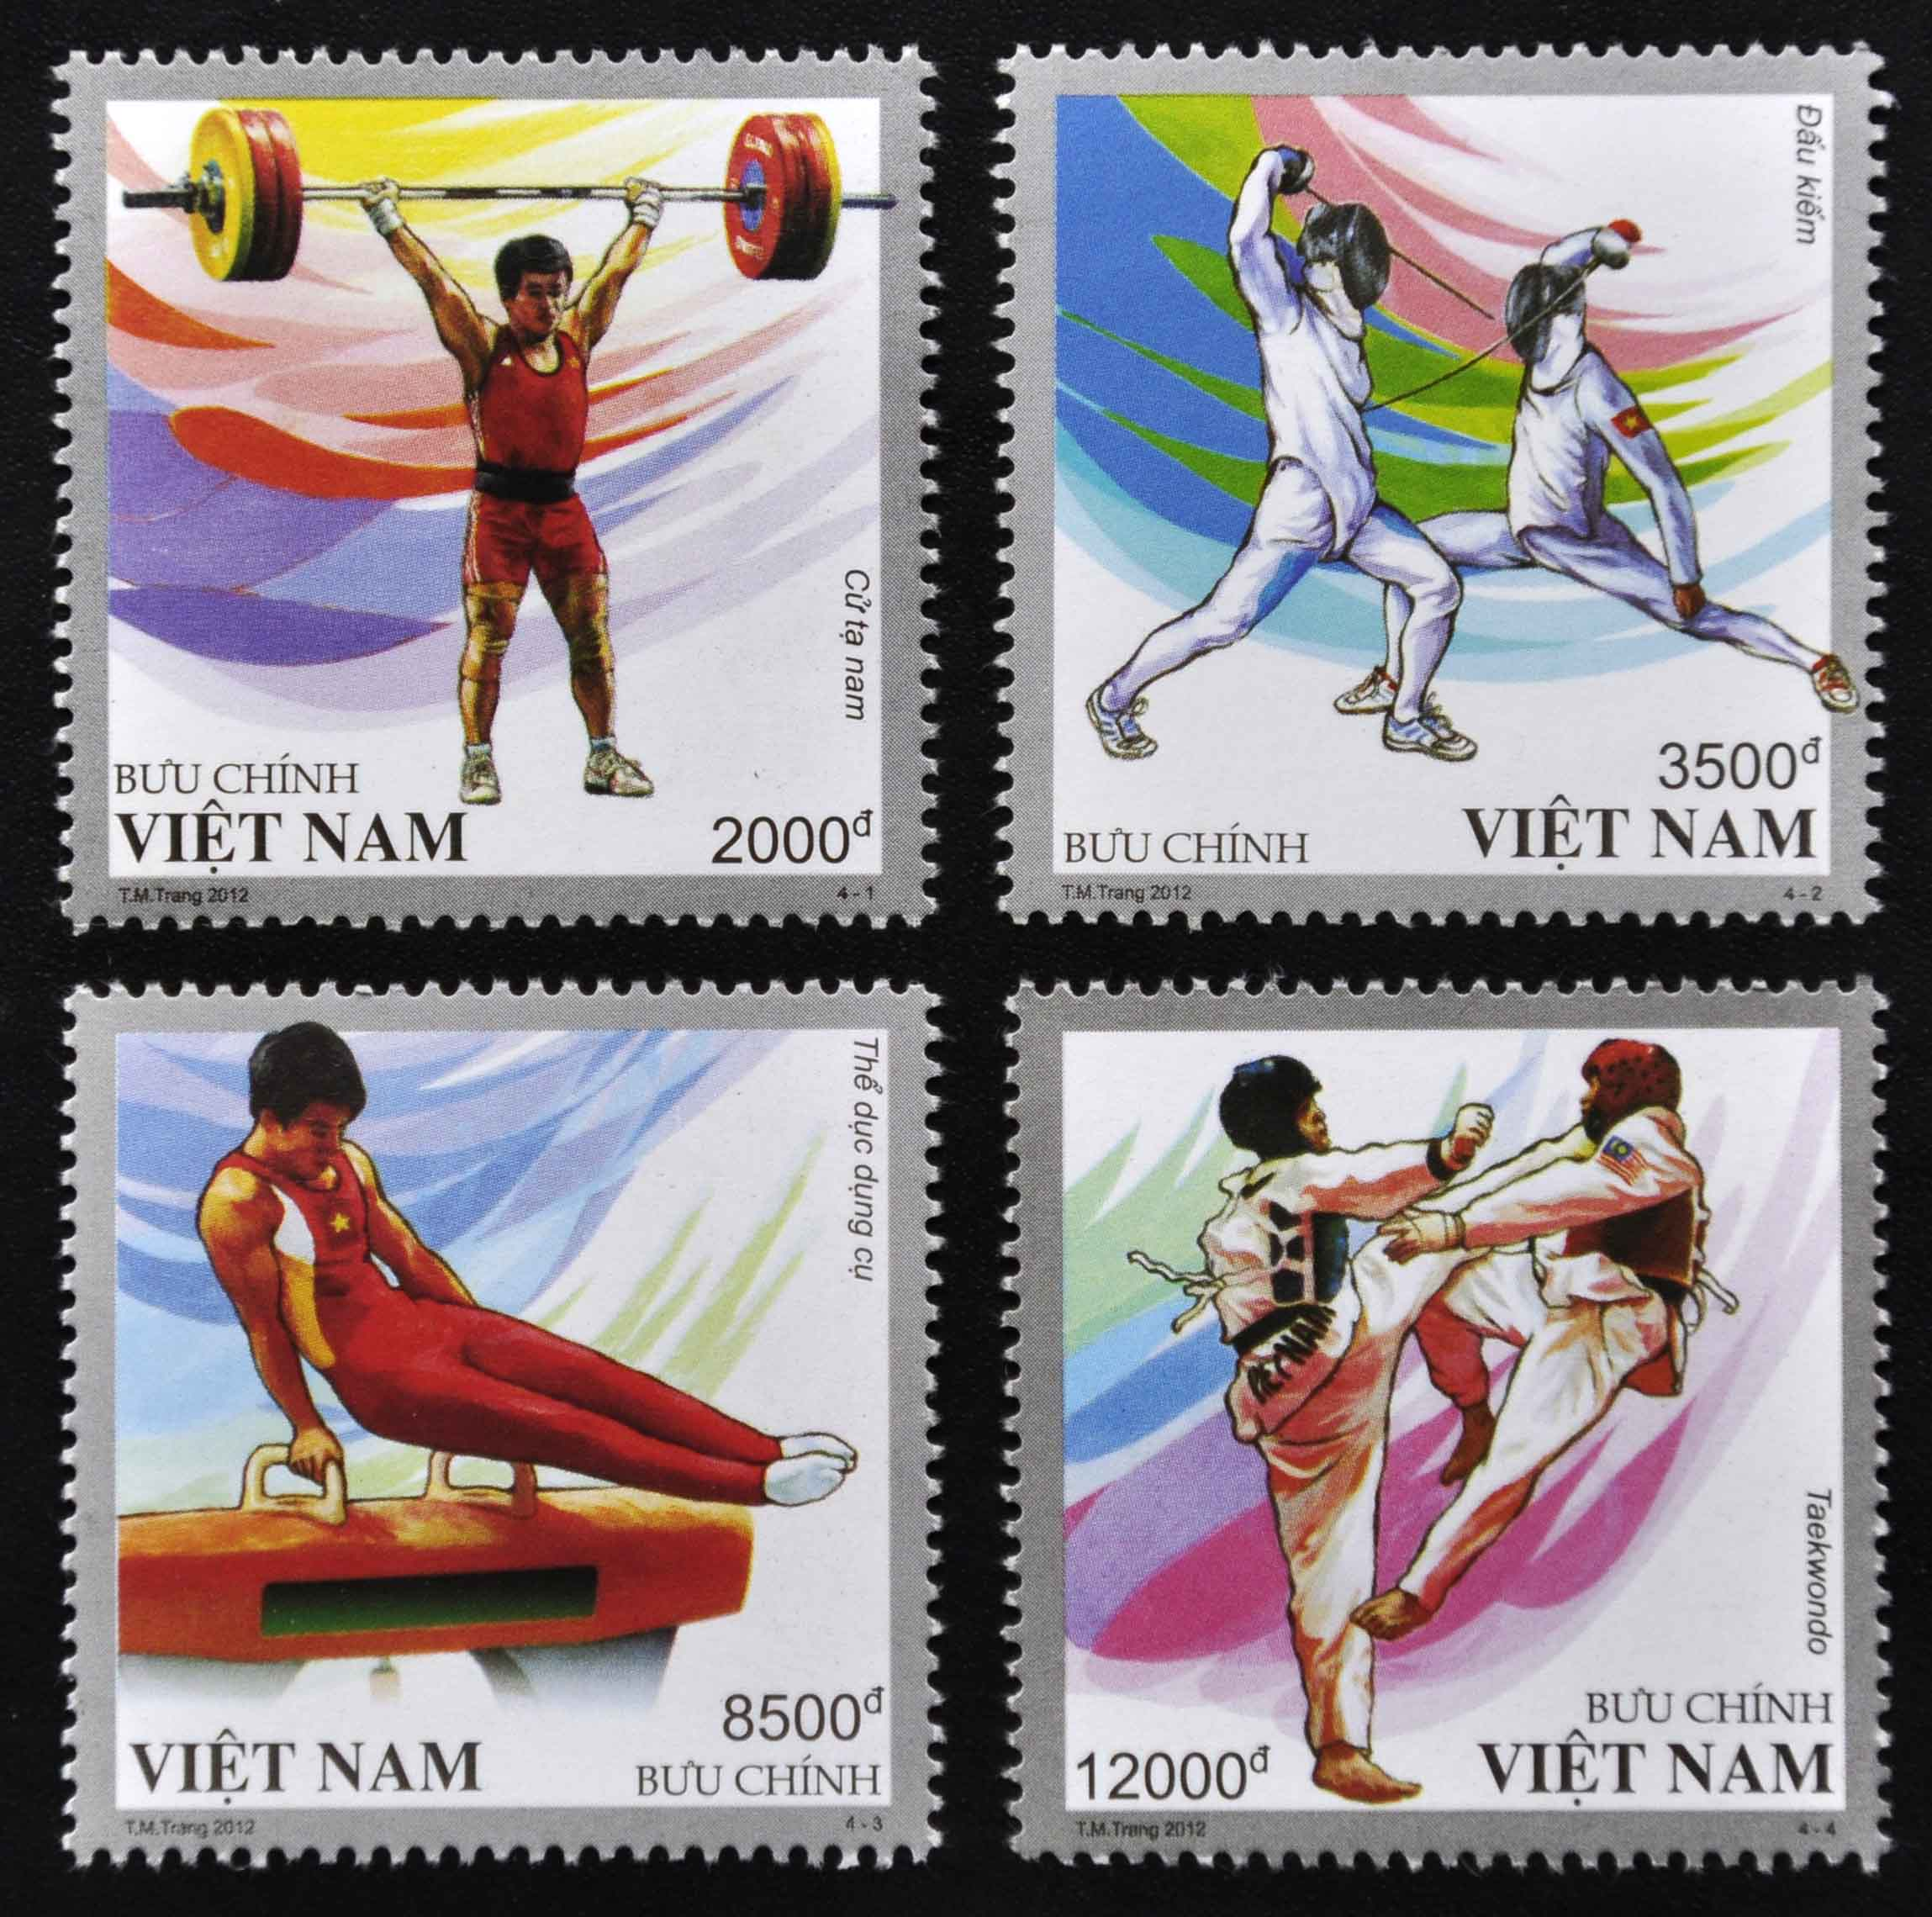 stamp collecting as a hobby essay